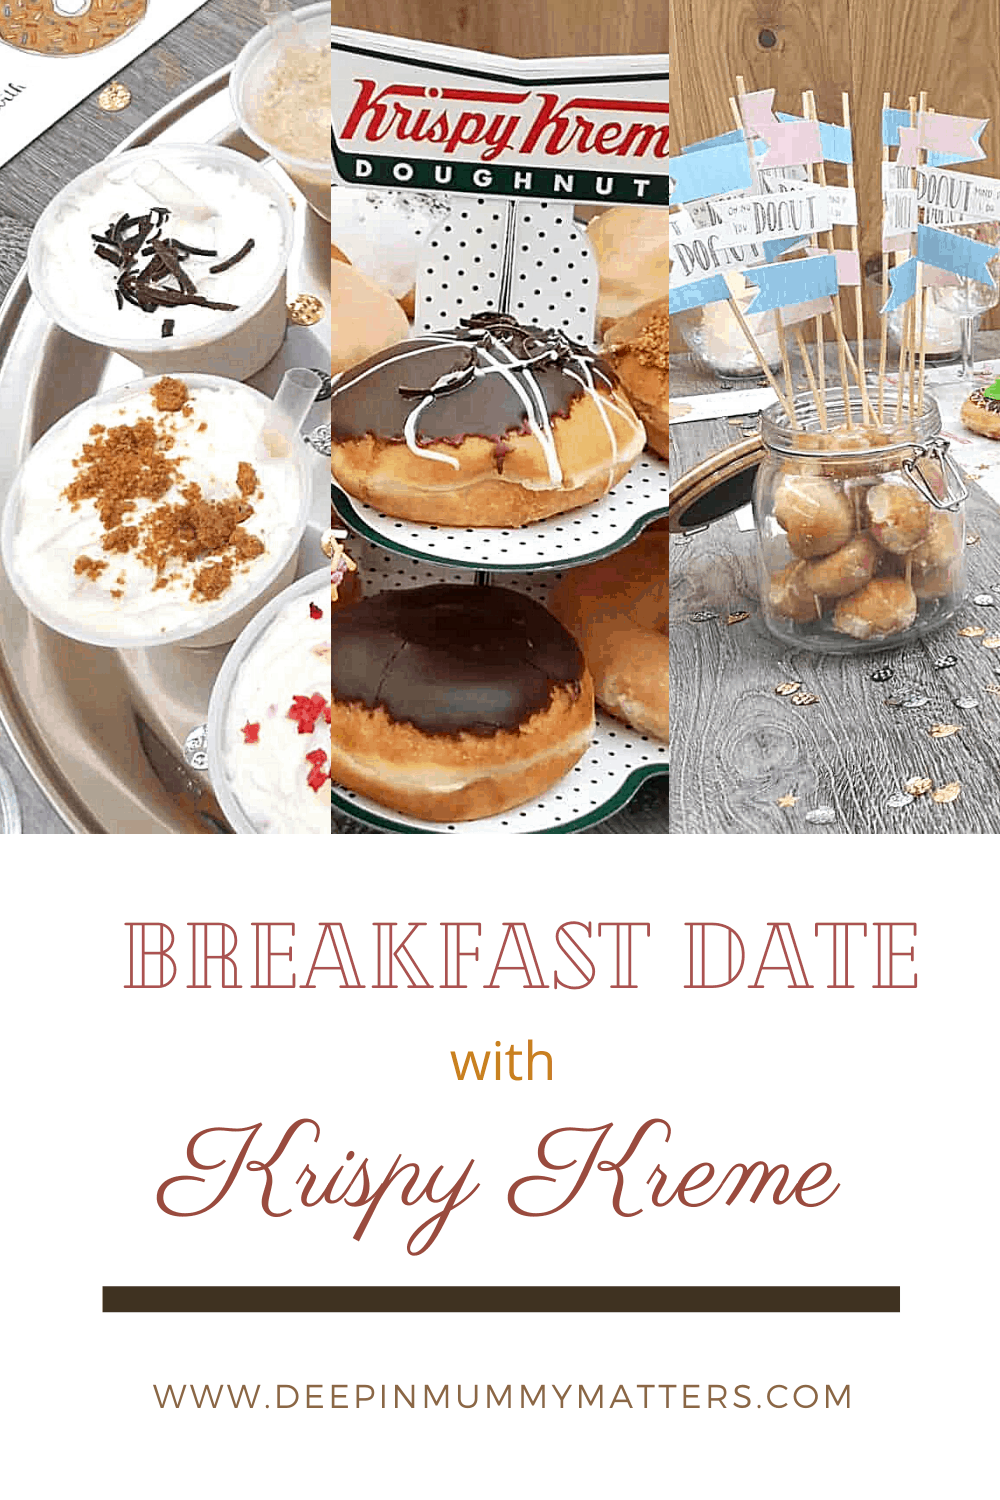 Last Saturday I met up with local blogging buddy for a breakfast date with Krispy Kreme in Queensgate for a doughnut and smoothie banquet.